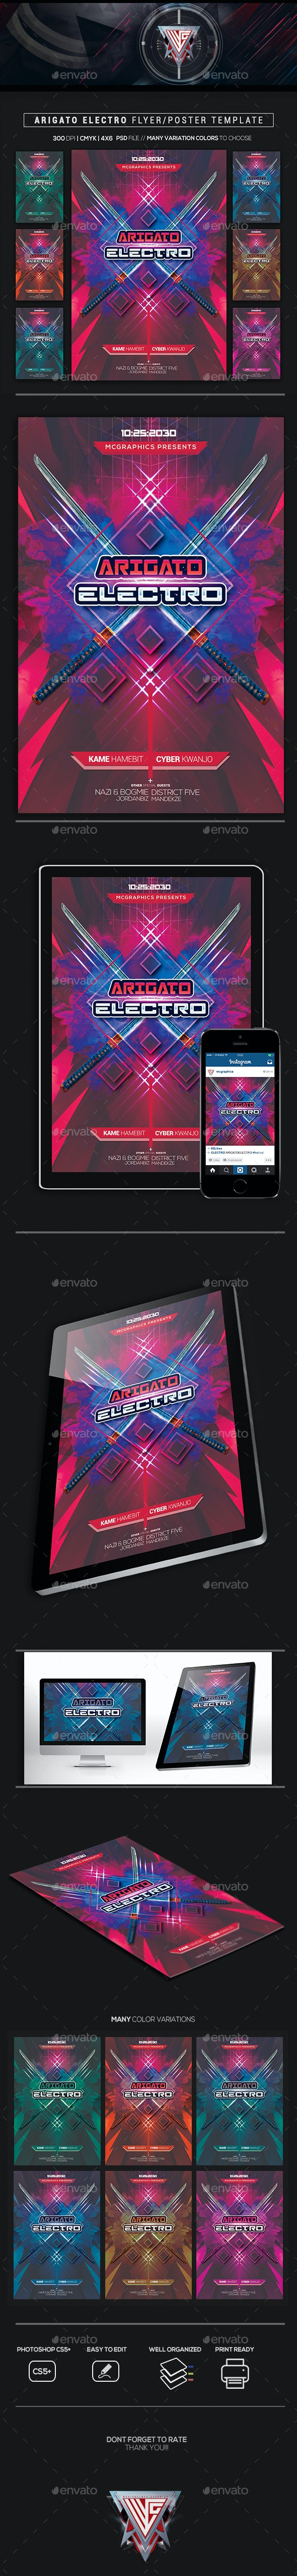 Arigato Electro Flyer/ Poster Template - Flyers Print Templates